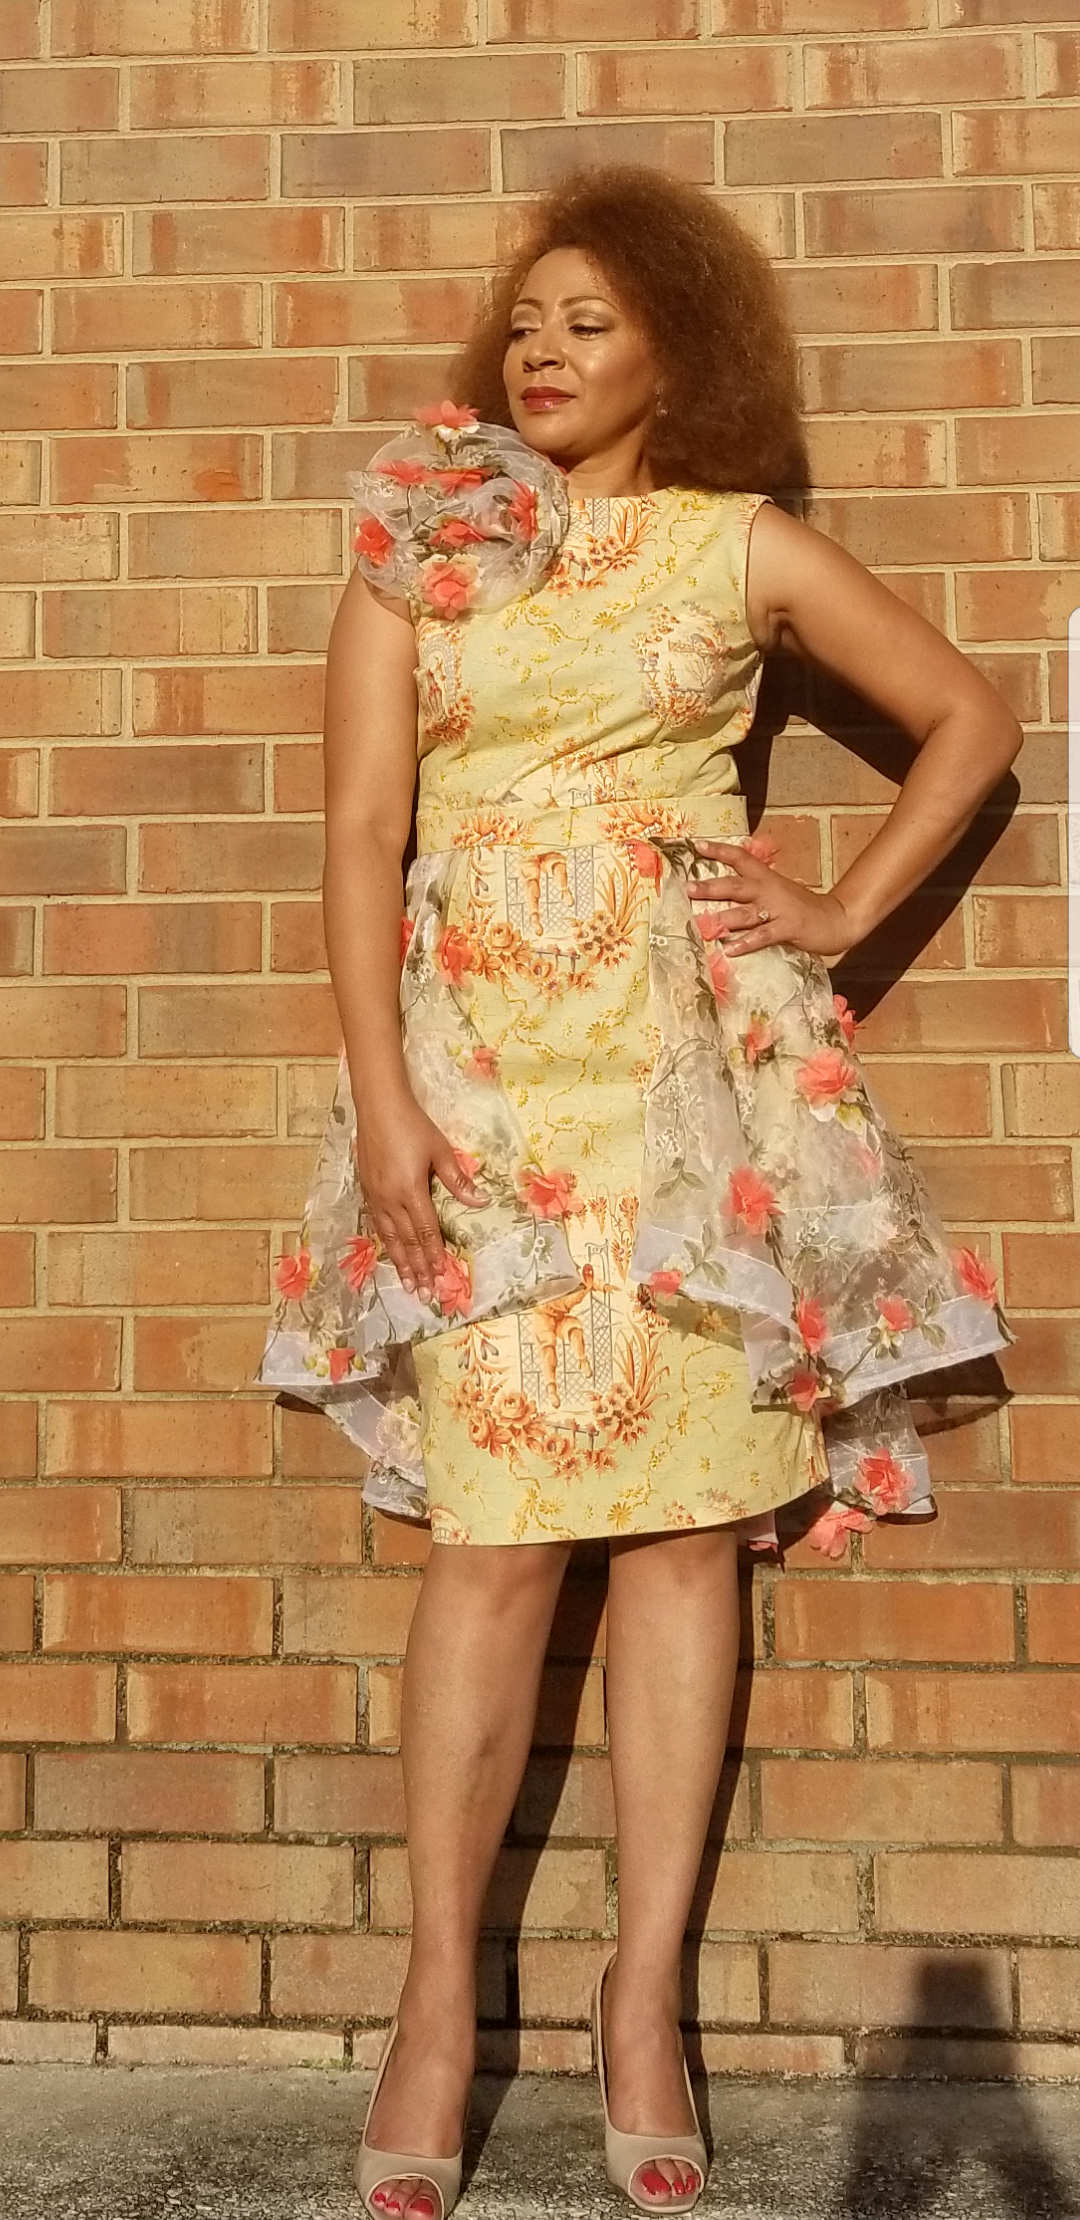 Picture of  Alethia of Sew Much Talent for the 2019 Day and Night Dress Challenge bloggers&  vloggers